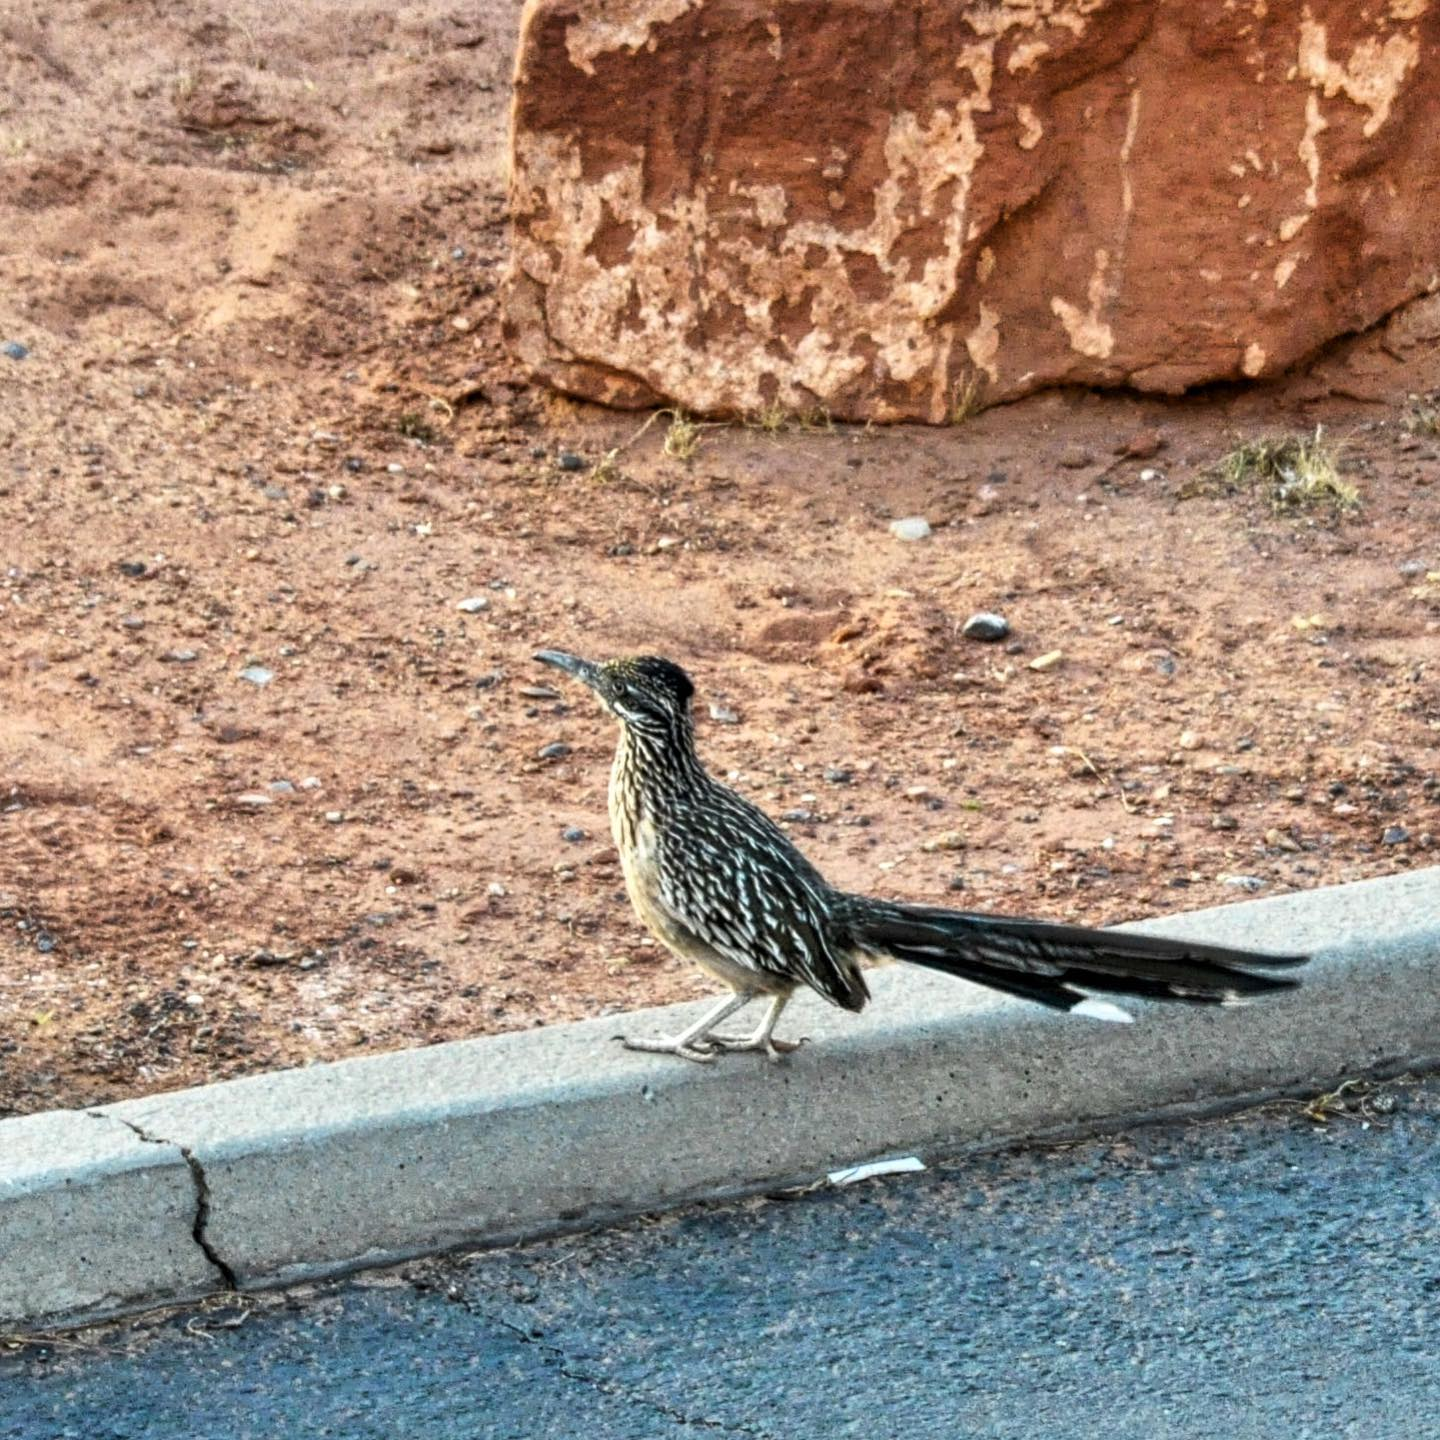 Roadrunner, Page, Arizona  When we saw a roadrunner for the first time, we totally freaked out. And yes, their speed is real. It was hard work to take a pic😉   #usatravel #usatravels #usatrip #usavacation #america #arizona #arizonawildlife #ig_arizona #arizonalove #arizonalife #roadrunner #southwestern #exploretheusa #birdsofinstagram #birds #birdphotography #travelpics #exploremore #exploretheworld #travelholic #traveladdict #travelamerica #picoftheday #birdsofamerica #travelgram #arizonagram